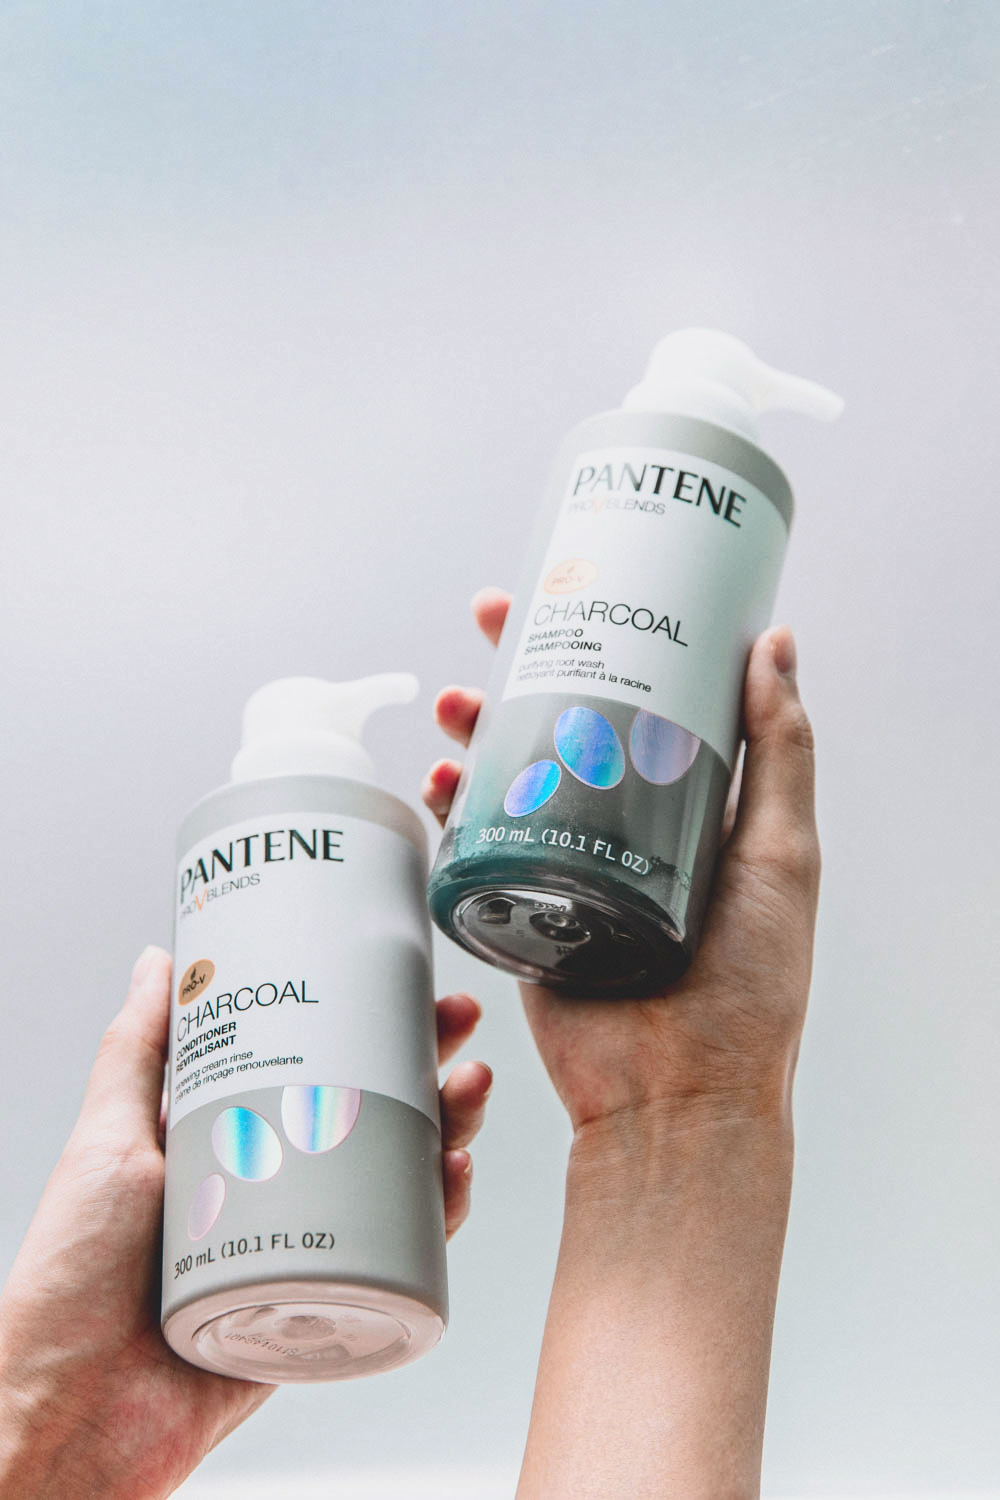 Pantene's New Charcoal Collection Review | Atsuna Matsui